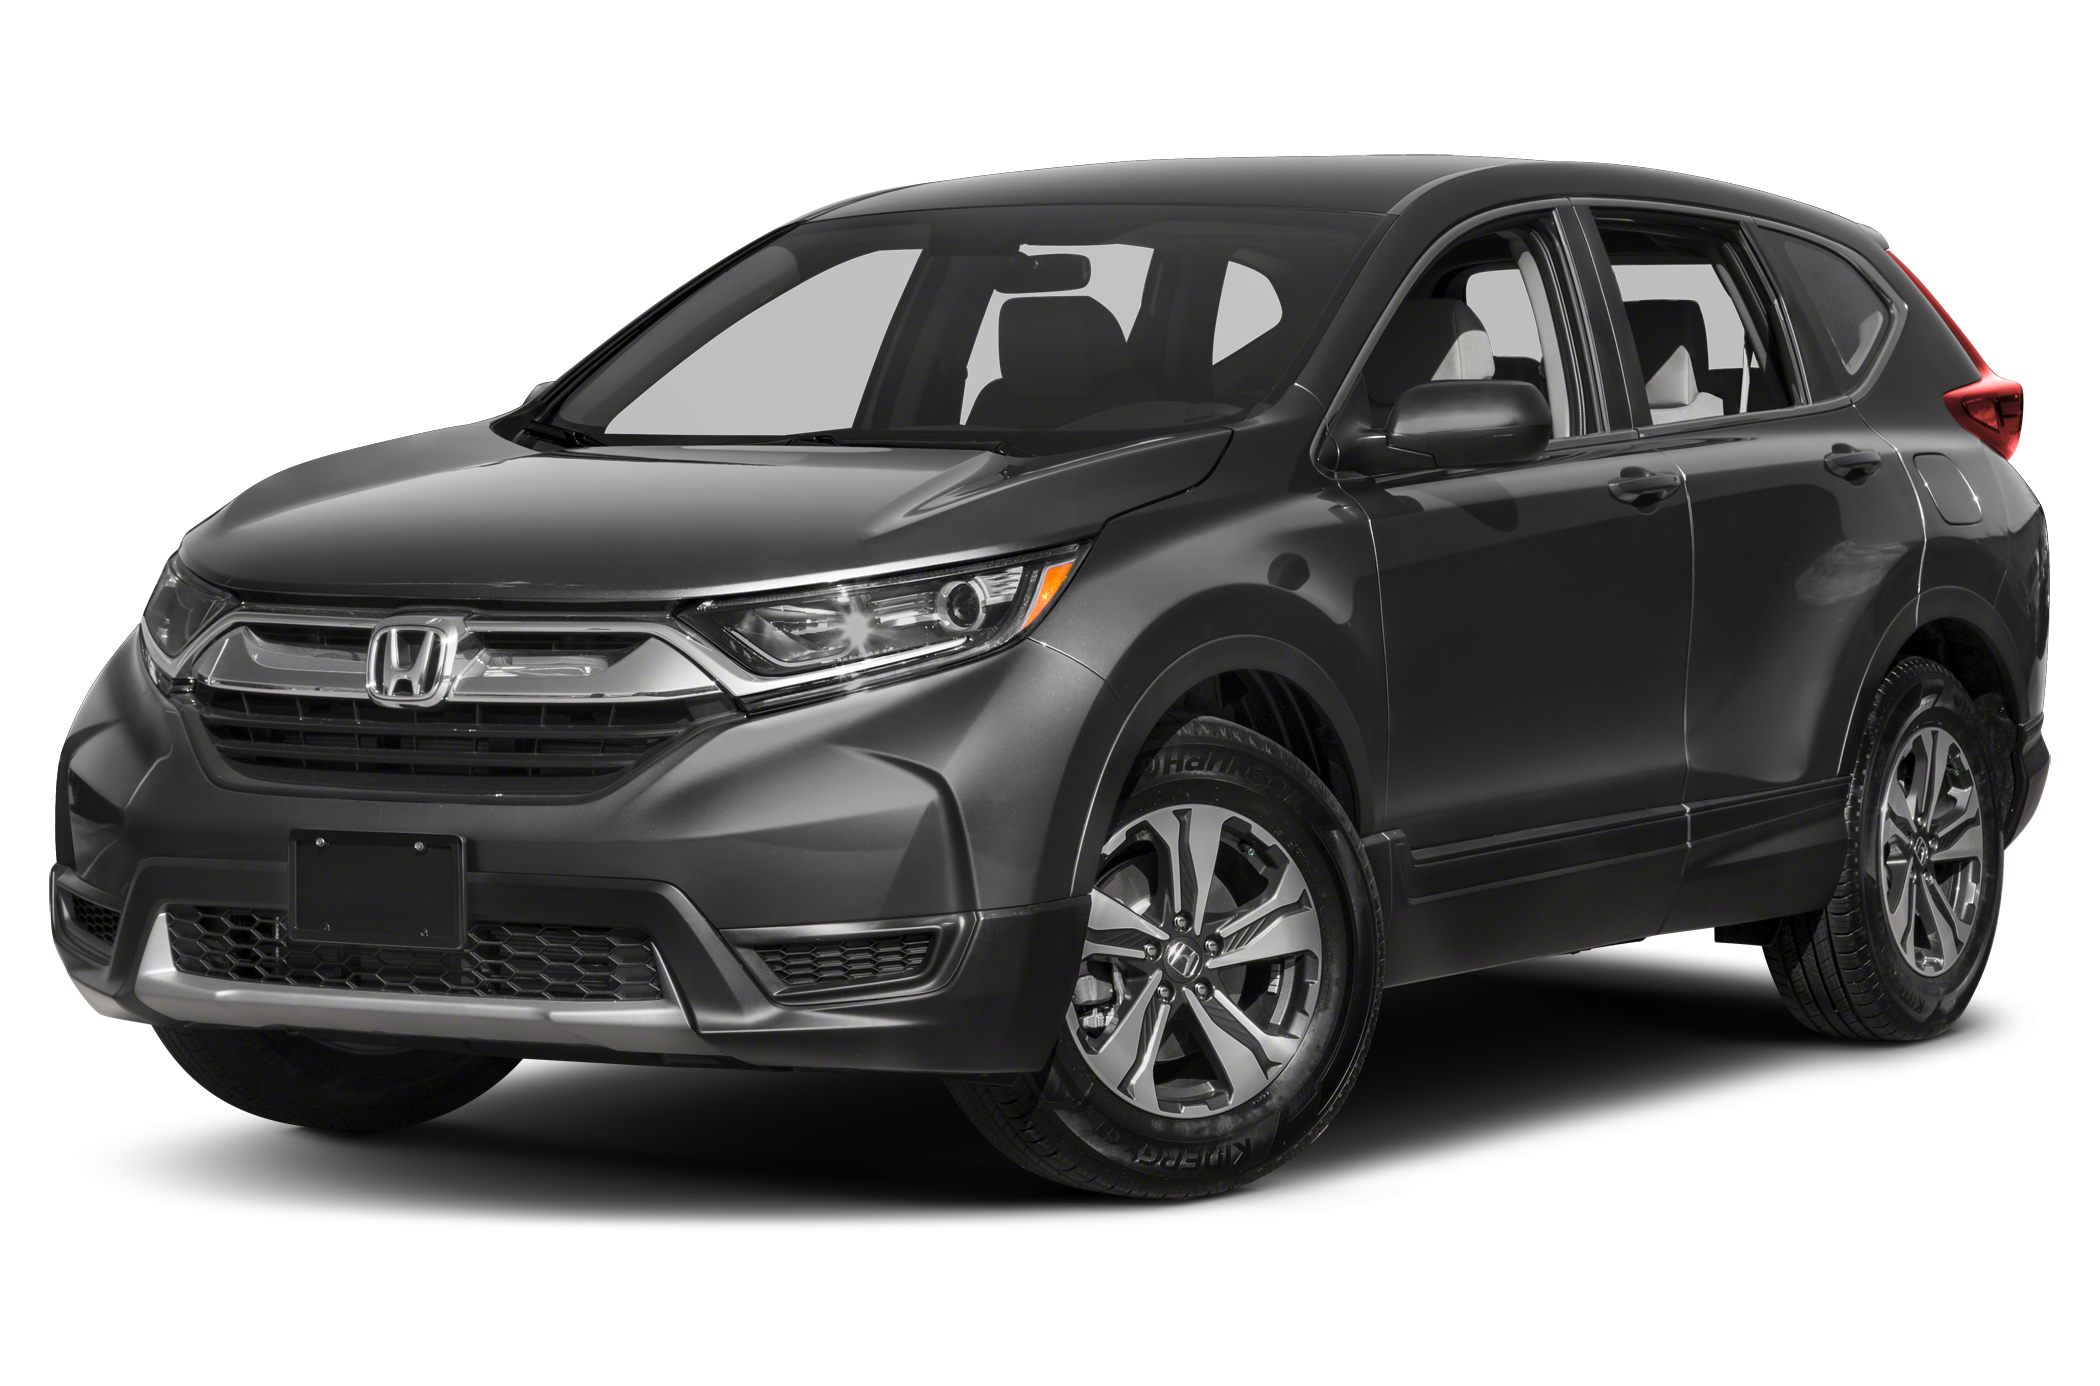 2017 honda cr v gets turbo power snazzier interior autoblog for Where is the honda cr v built